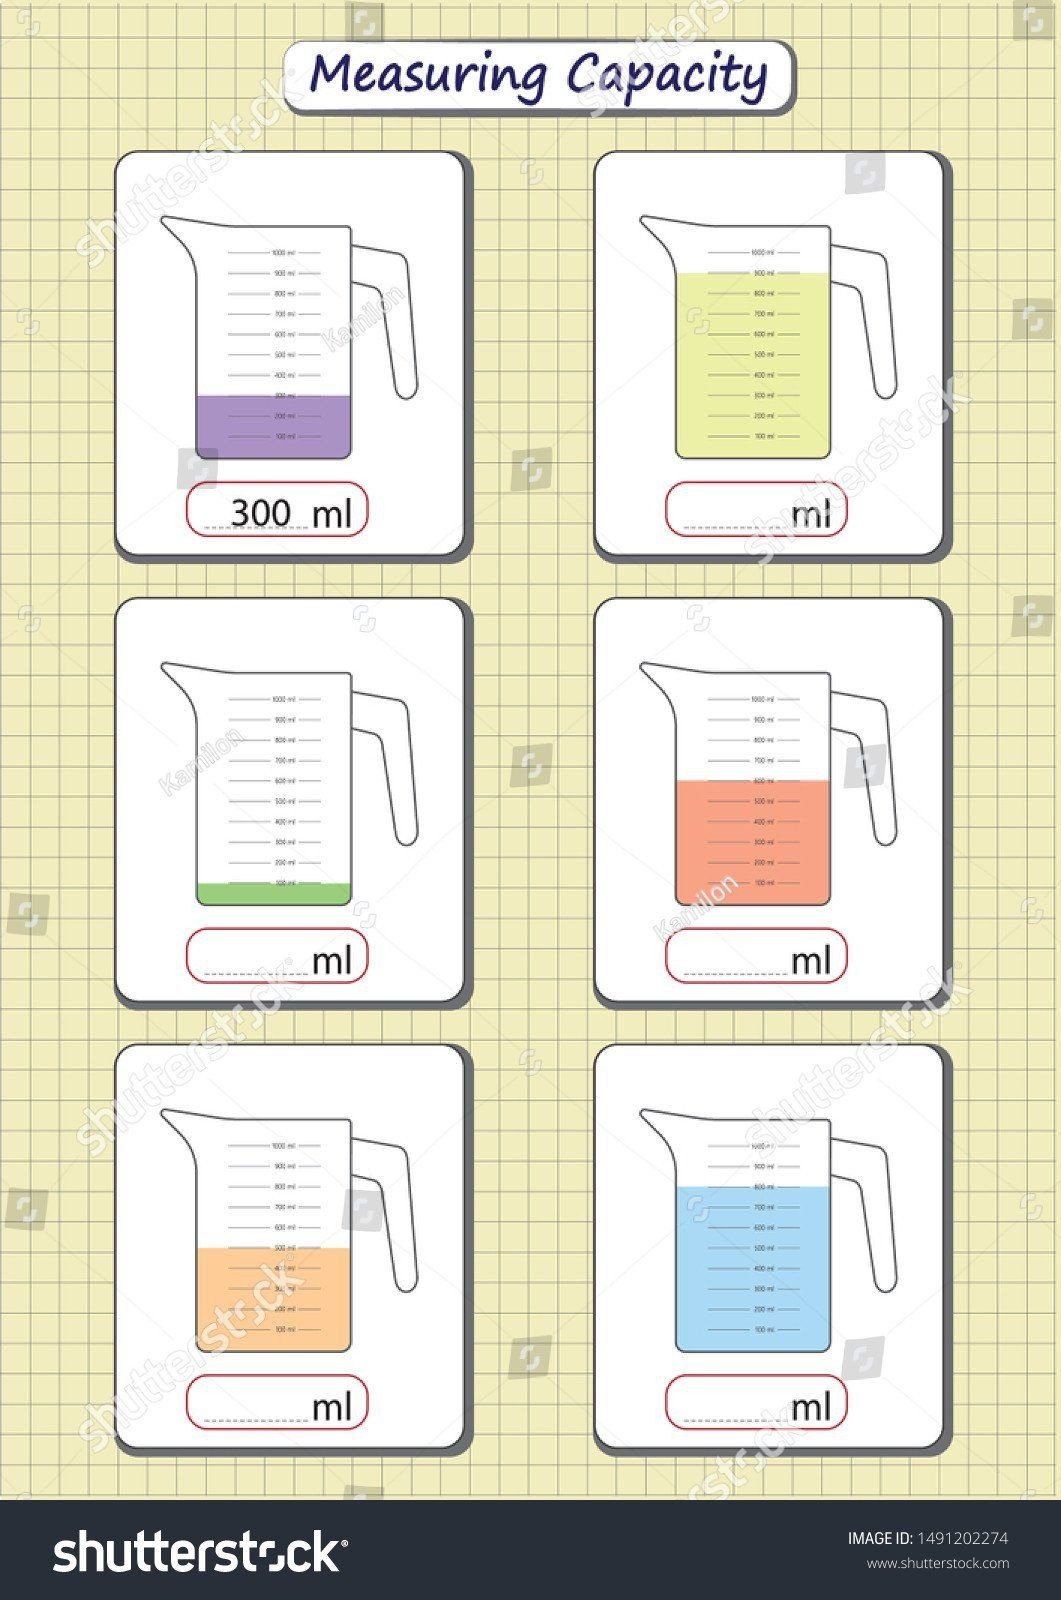 Measuring Capacity Worksheets Capacity Worksheet Kindergarten